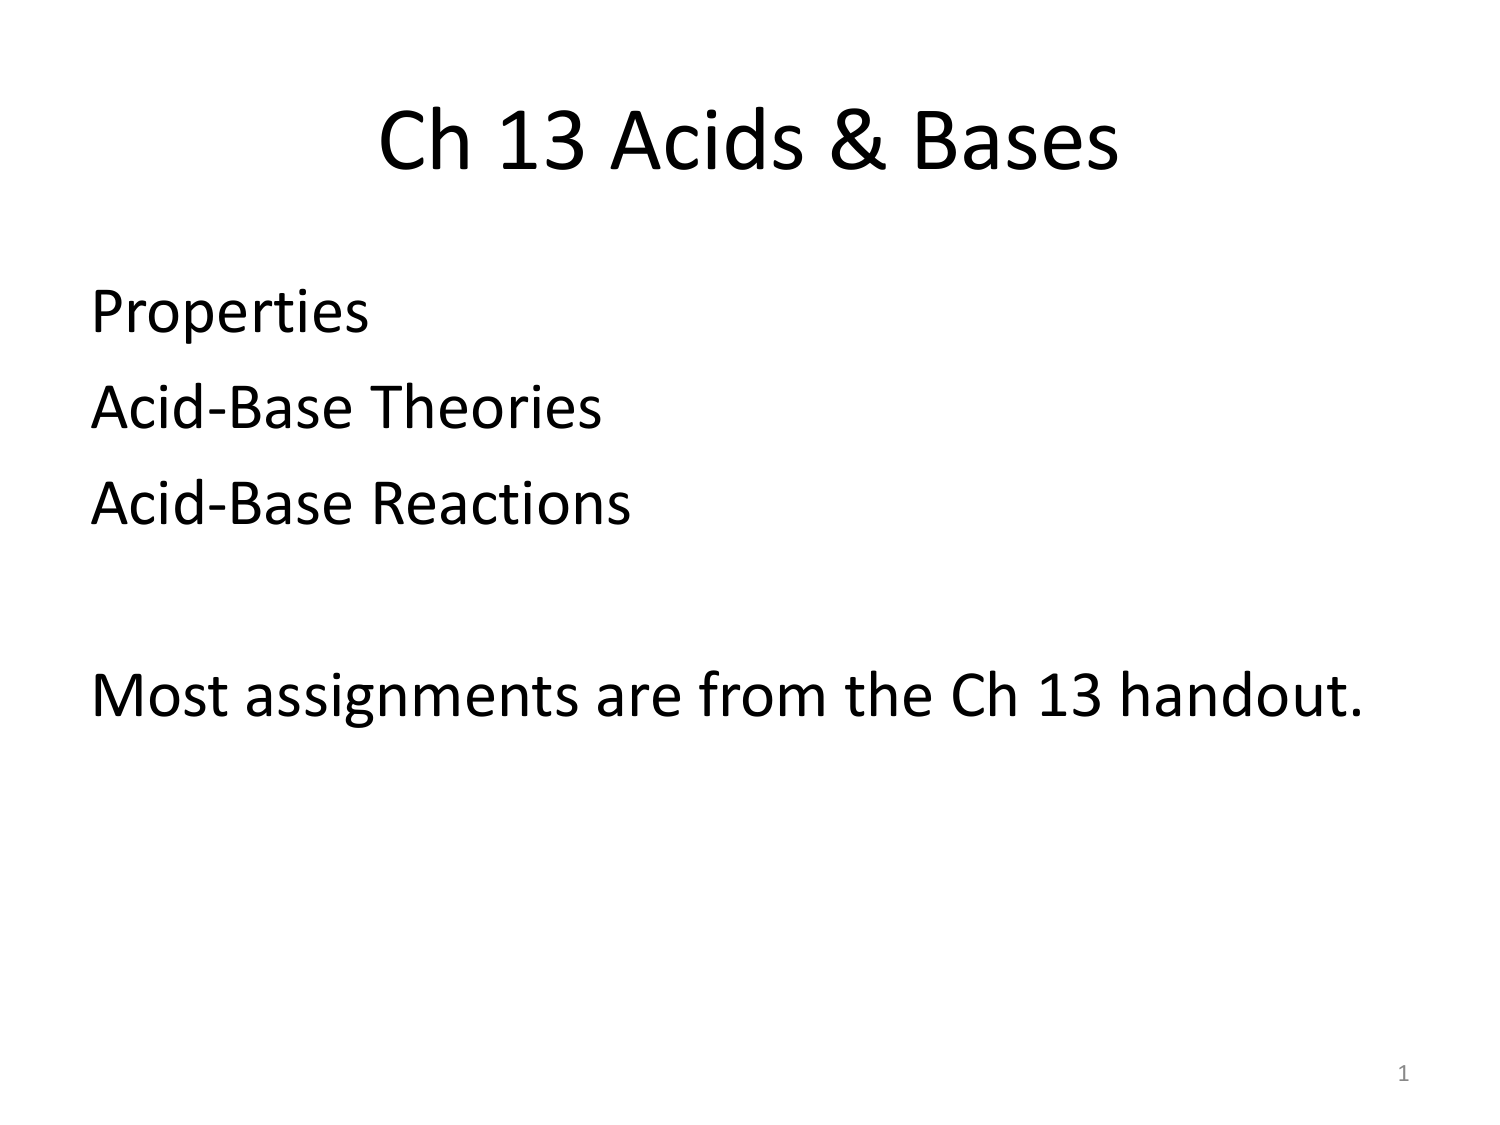 Conjugate Acid Base Pairs Worksheet 19 2: 13 ConcChem Acids Bases ,